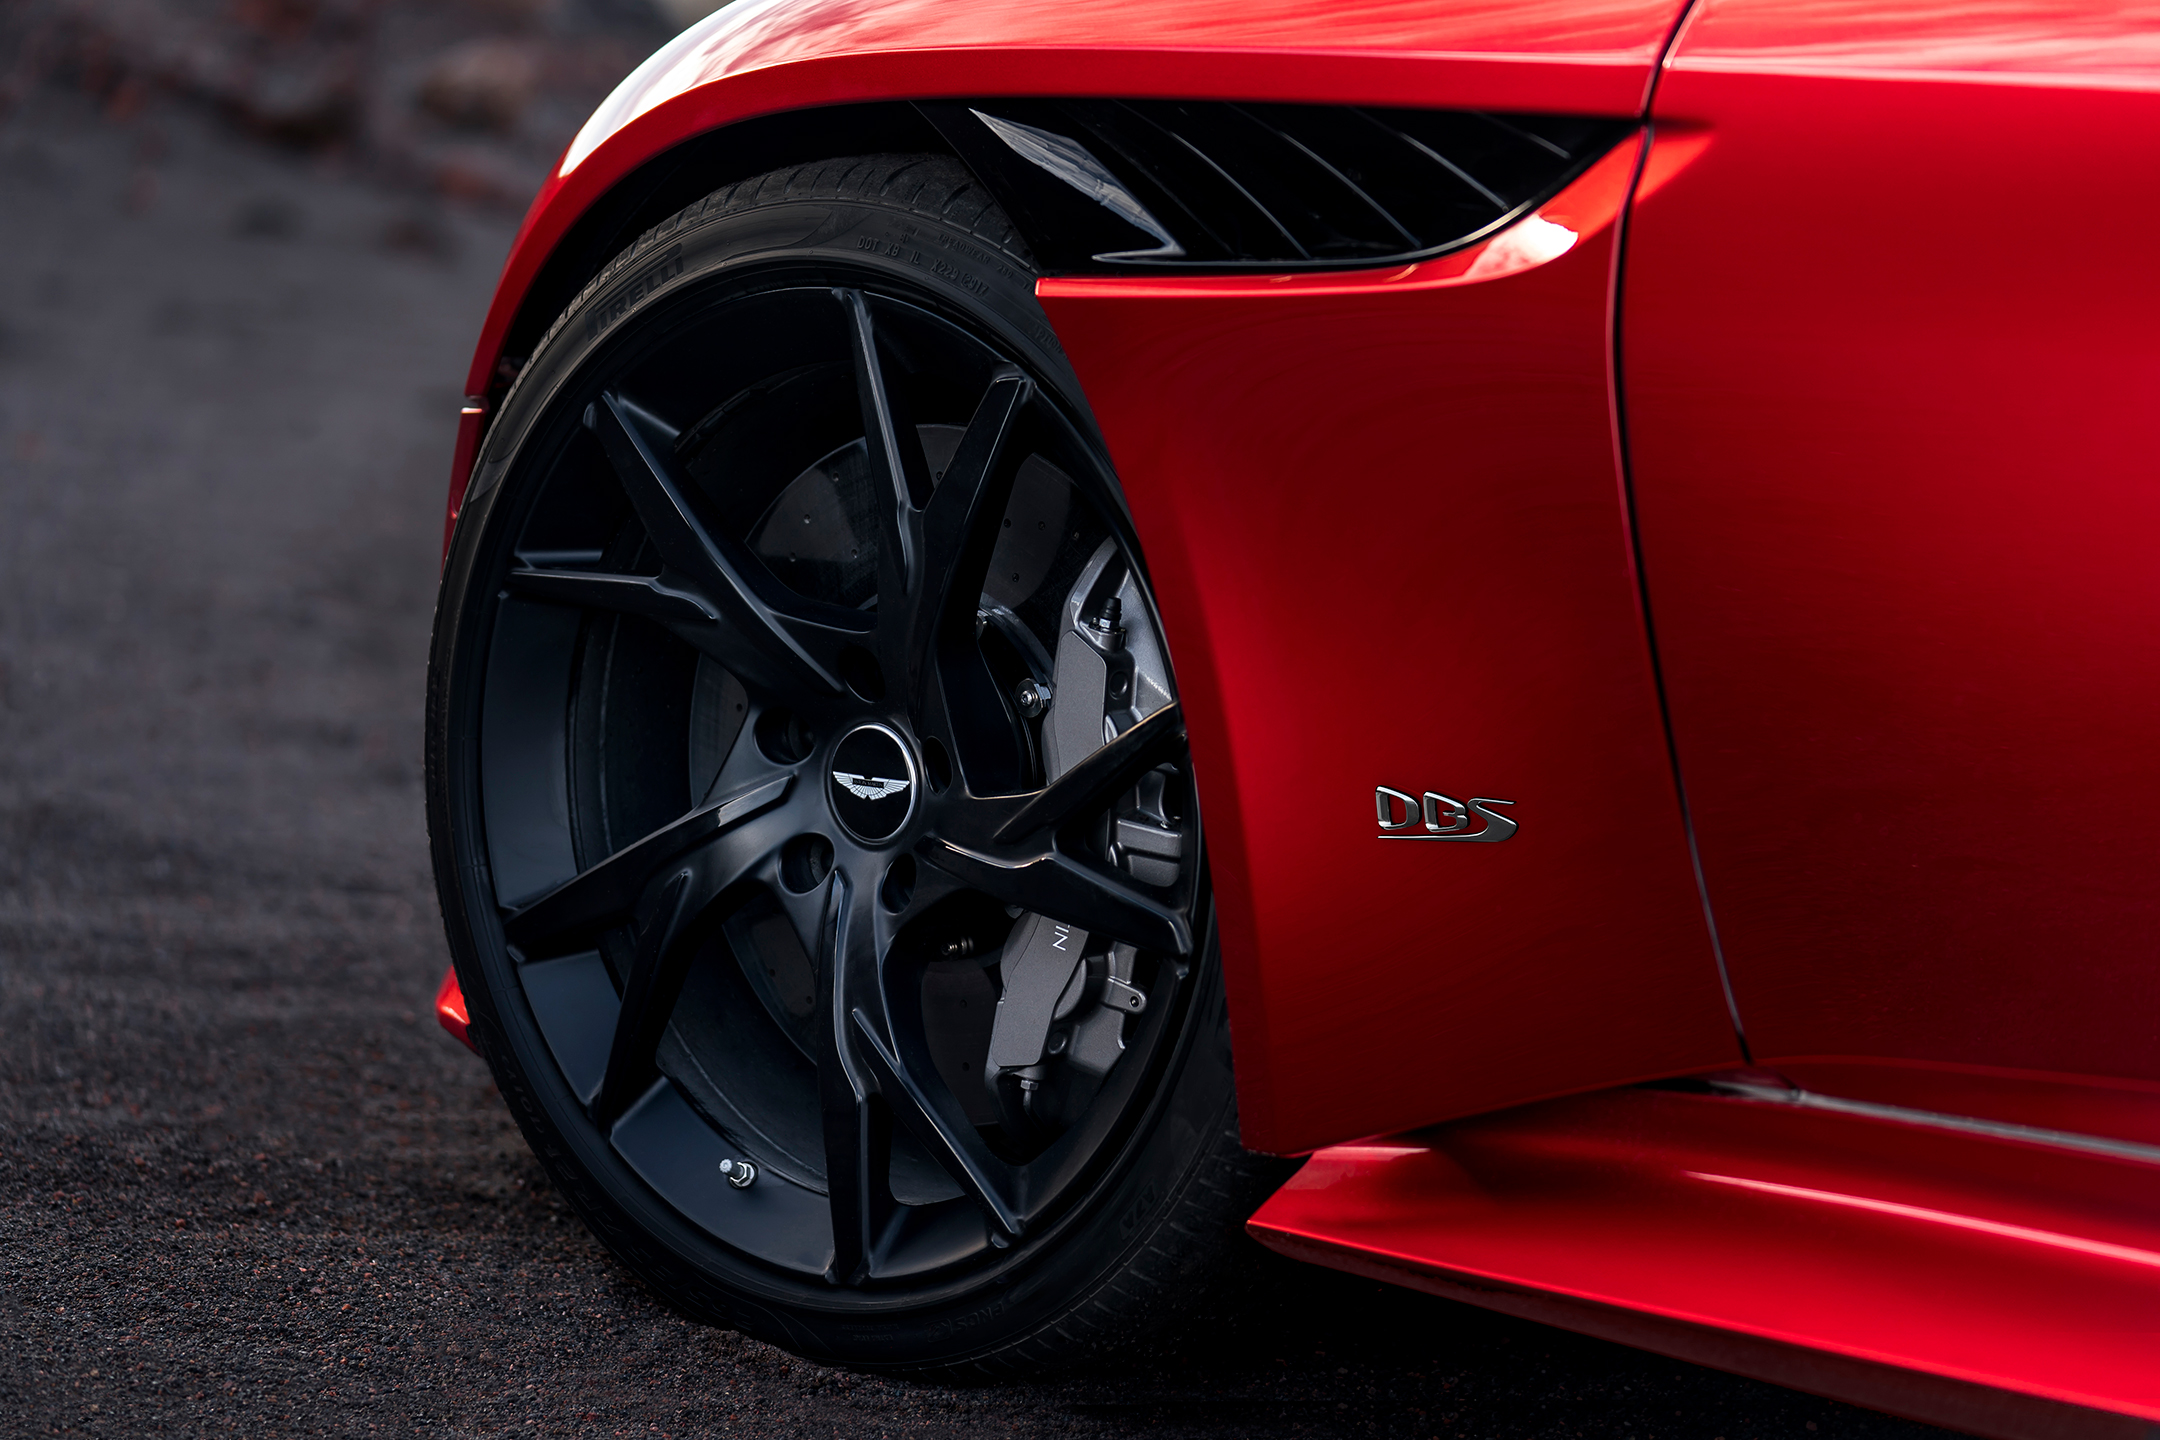 Aston Martin DBS Superleggera - 2018 - wheel / jante